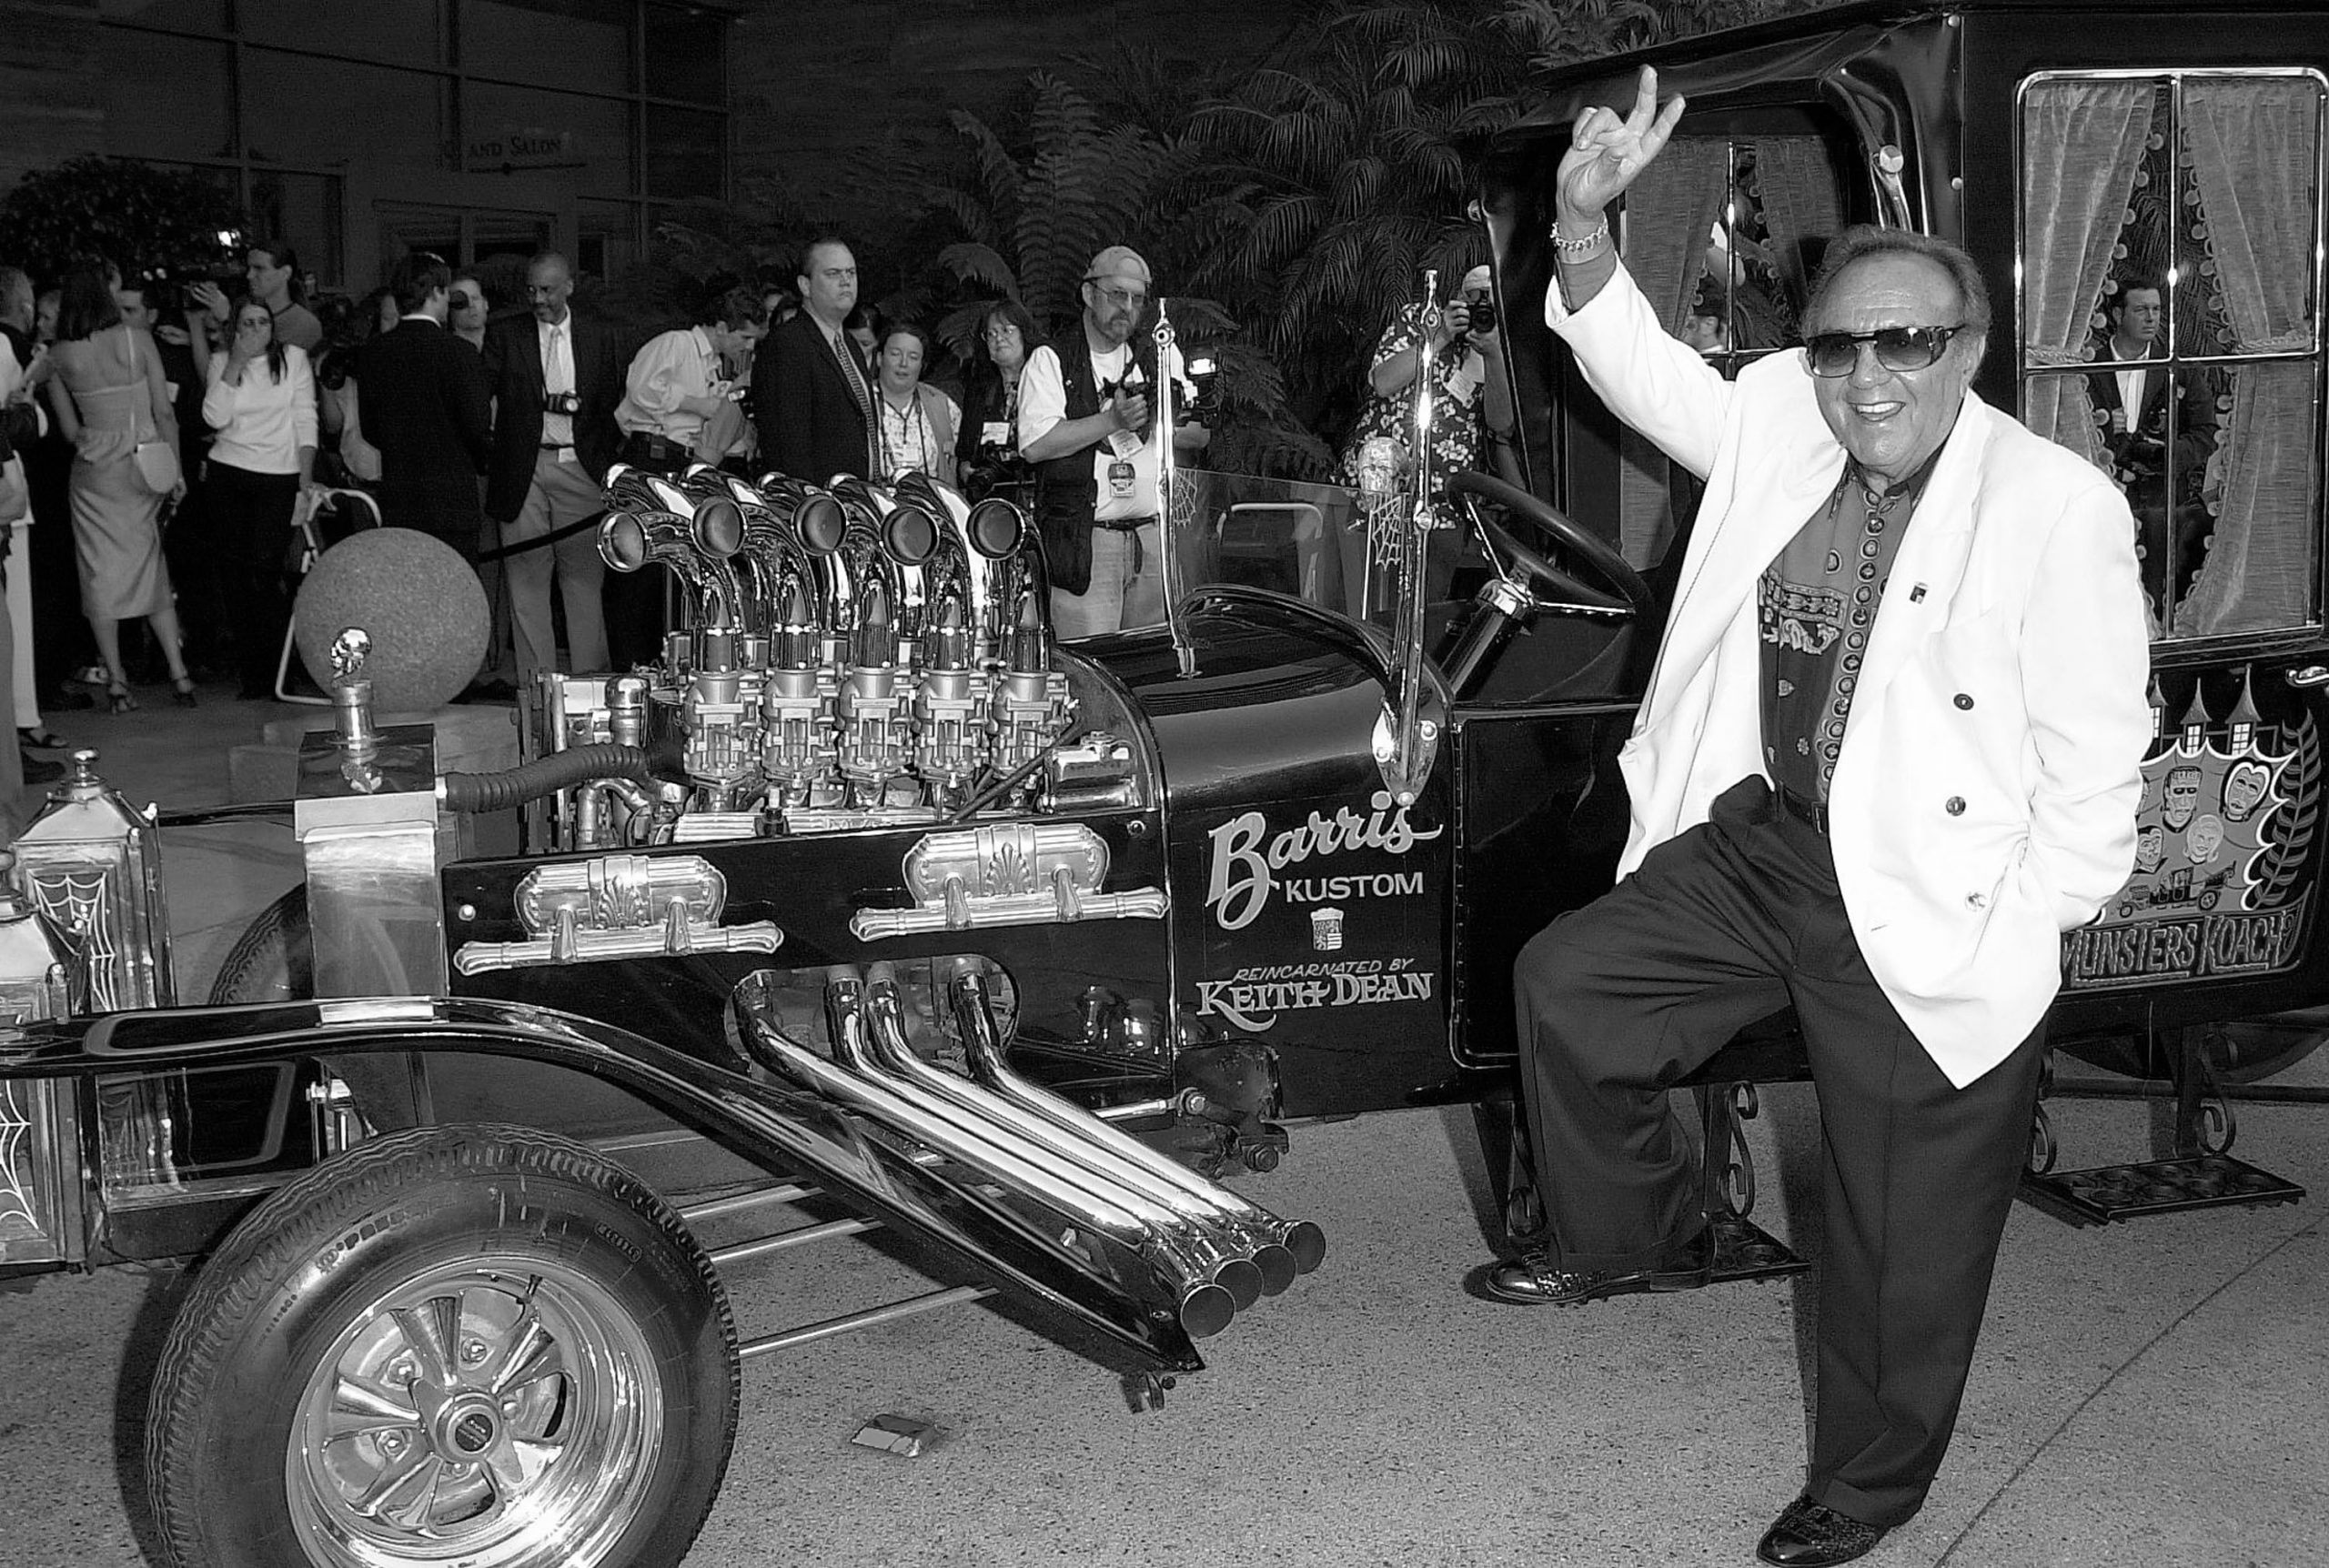 builder George Barris with his munster koach hot rod creation